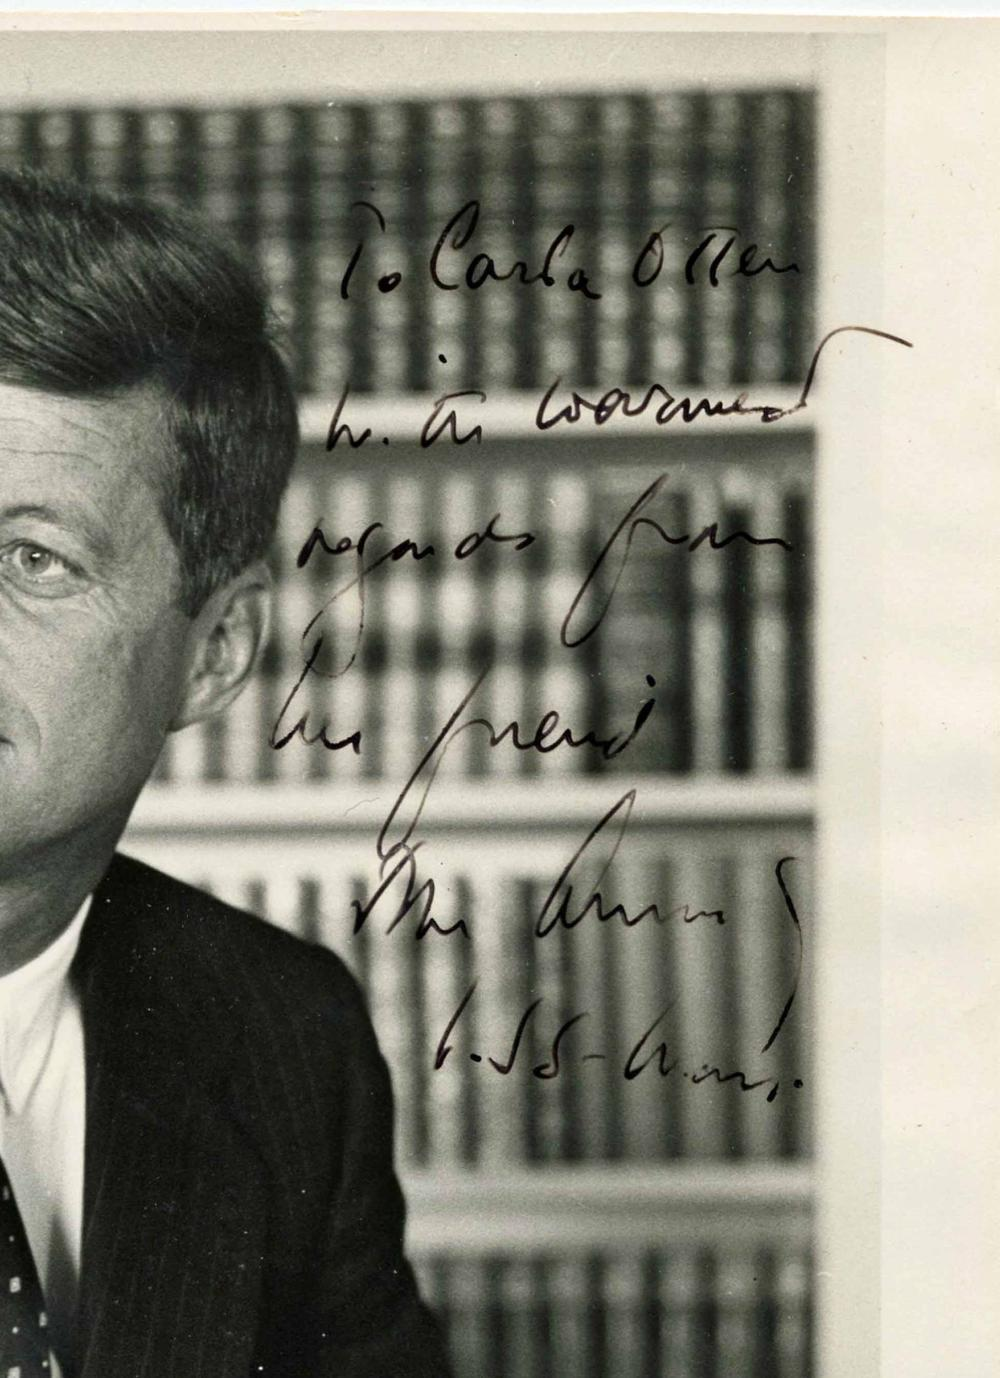 JFK Amazing Inscribed and Signed Photo of the Highest Quality, by Jacques Lowe